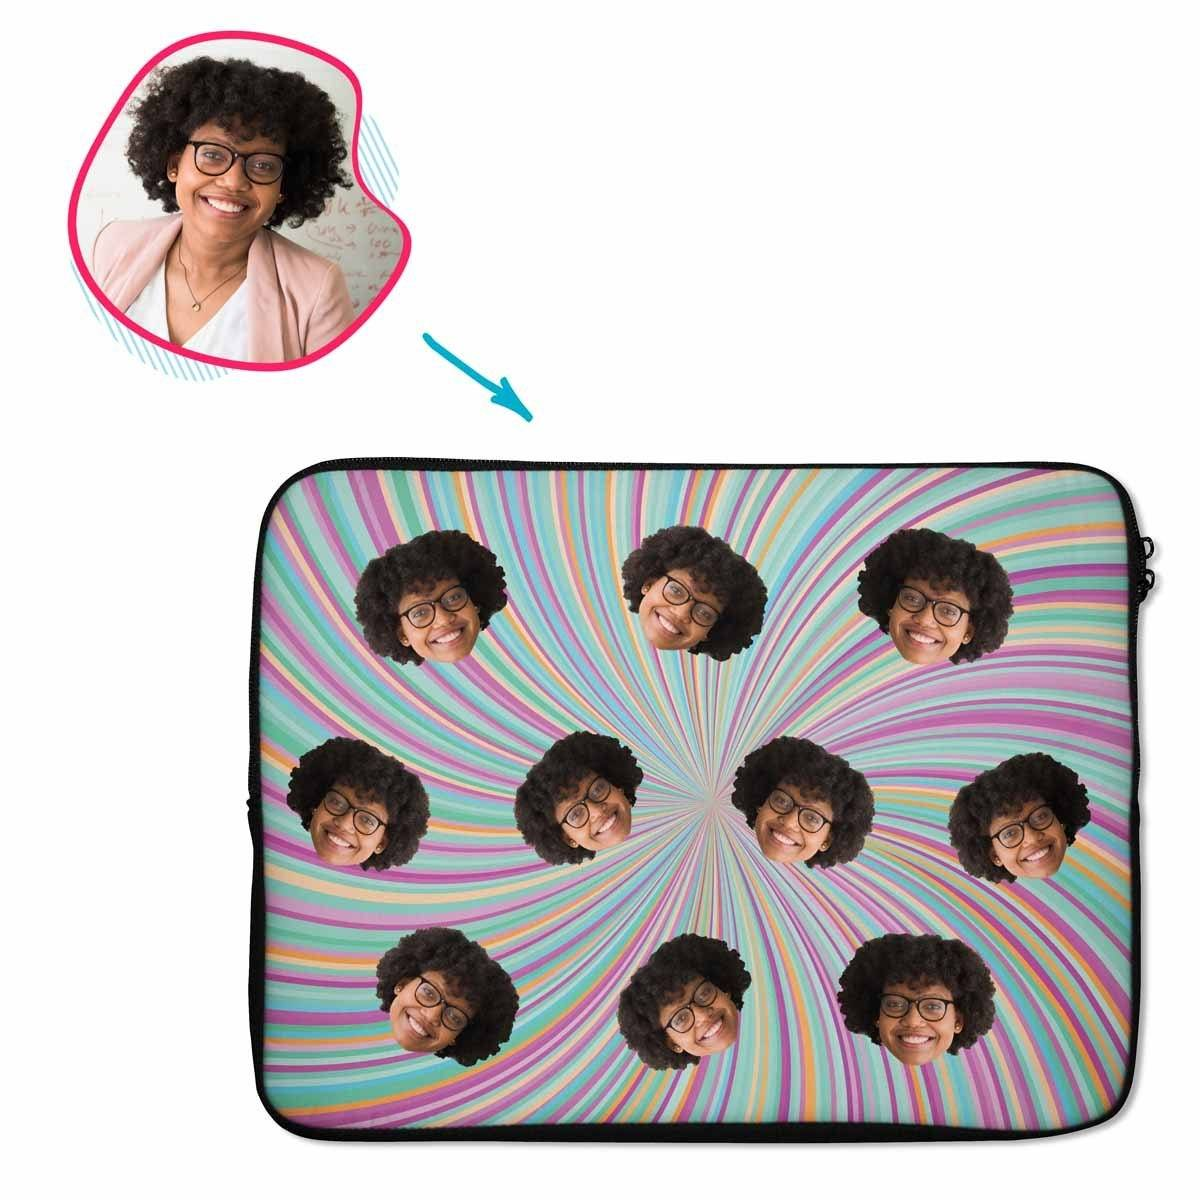 fantasy Fantasy laptop sleeve personalized with photo of face printed on them